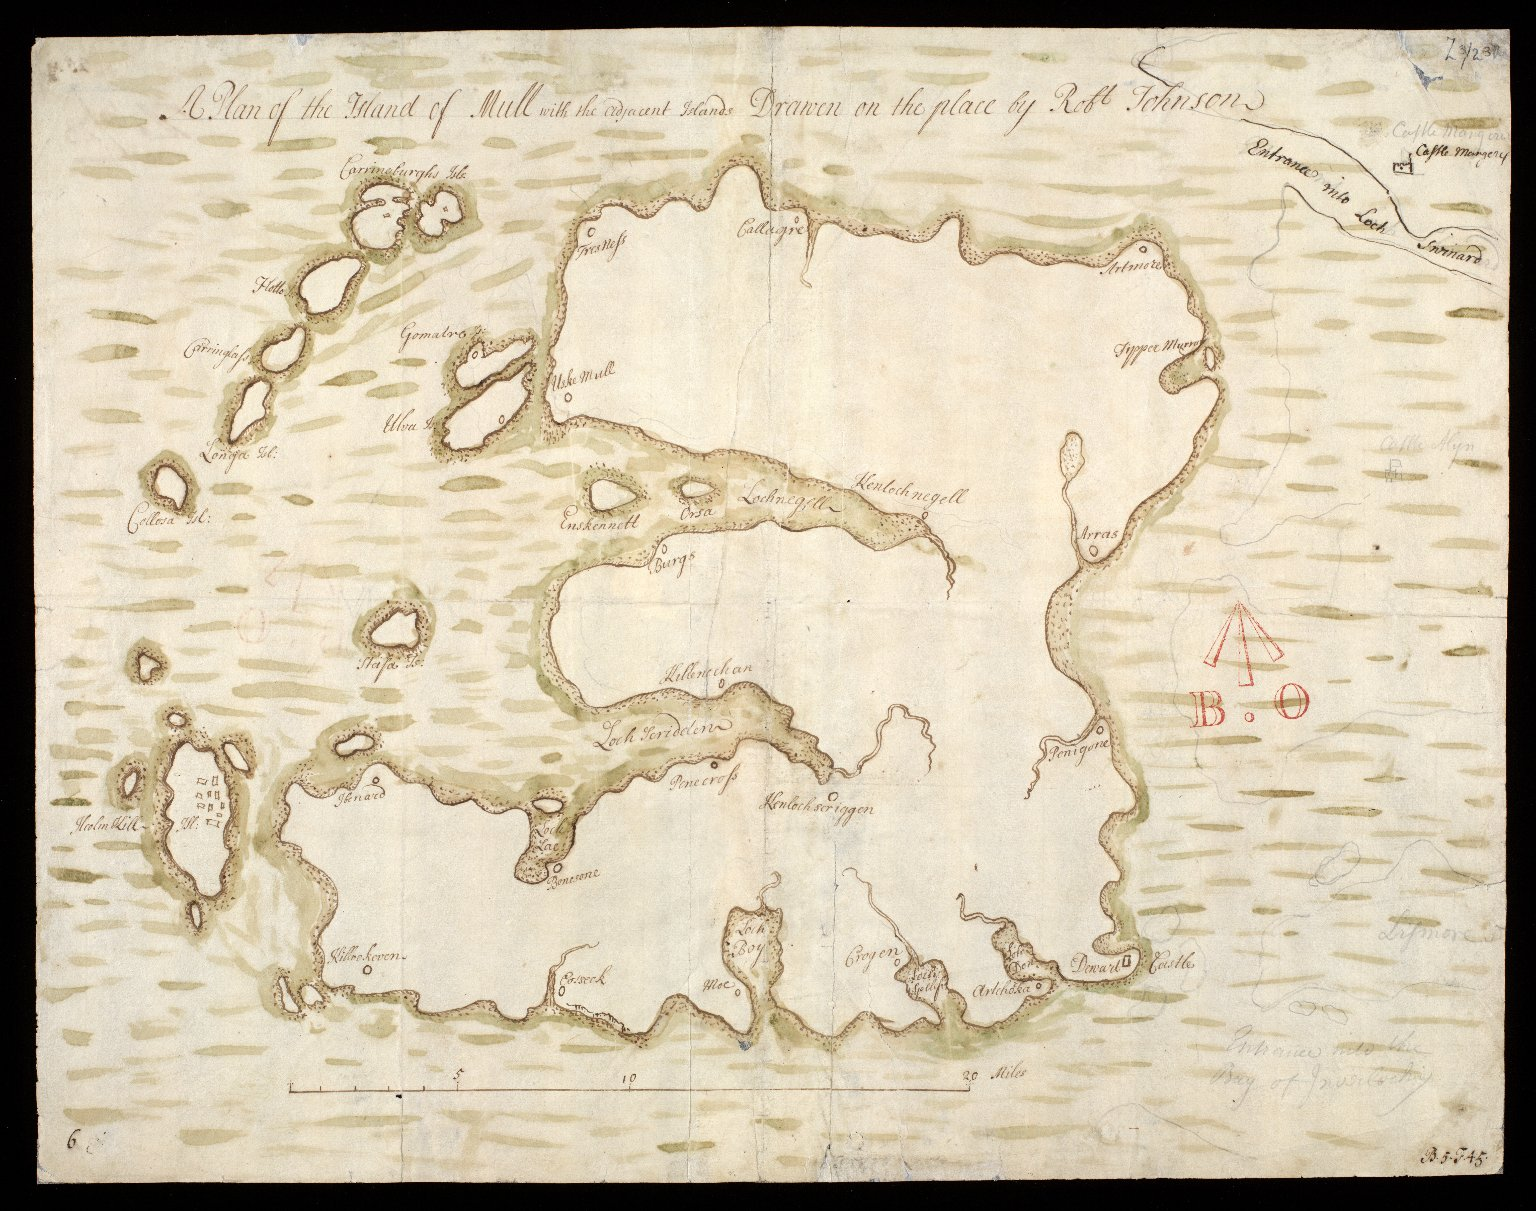 A Plan of the Island of Mull with the adjacent Islands [1 of 1]